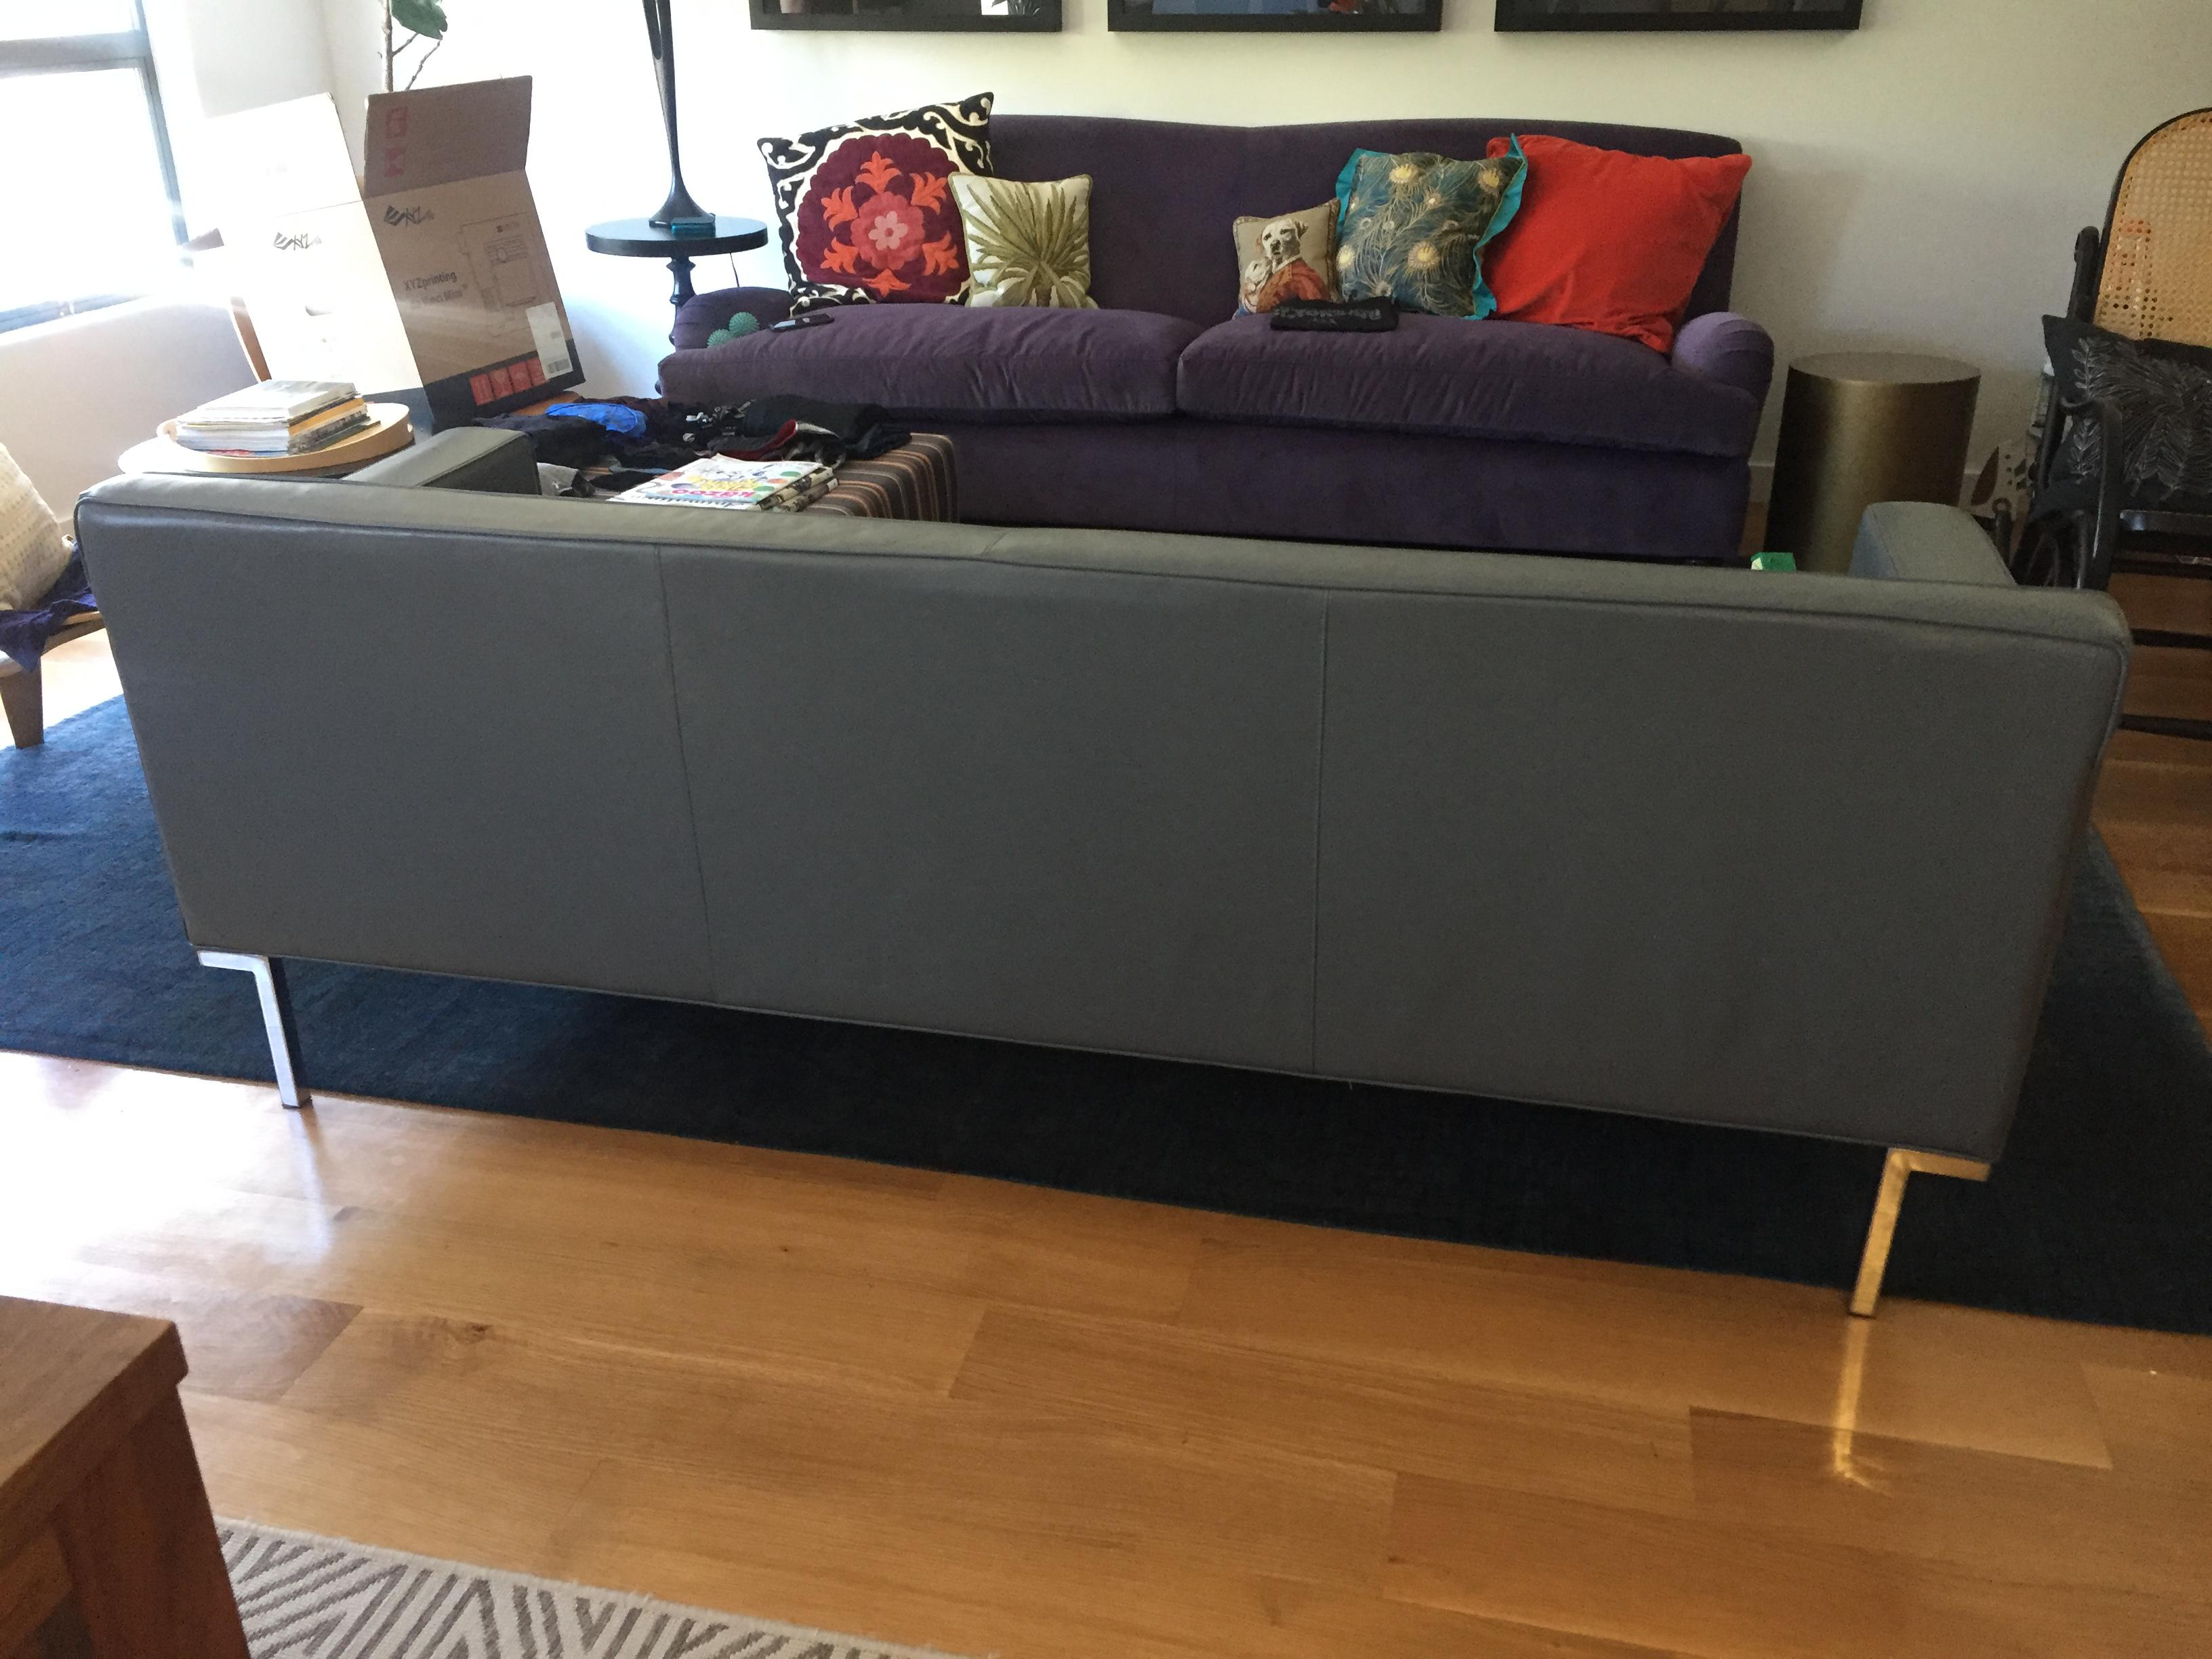 dwr theatre sofa review leather canada ted boerner chairish mid century modern for sale image 3 of 5